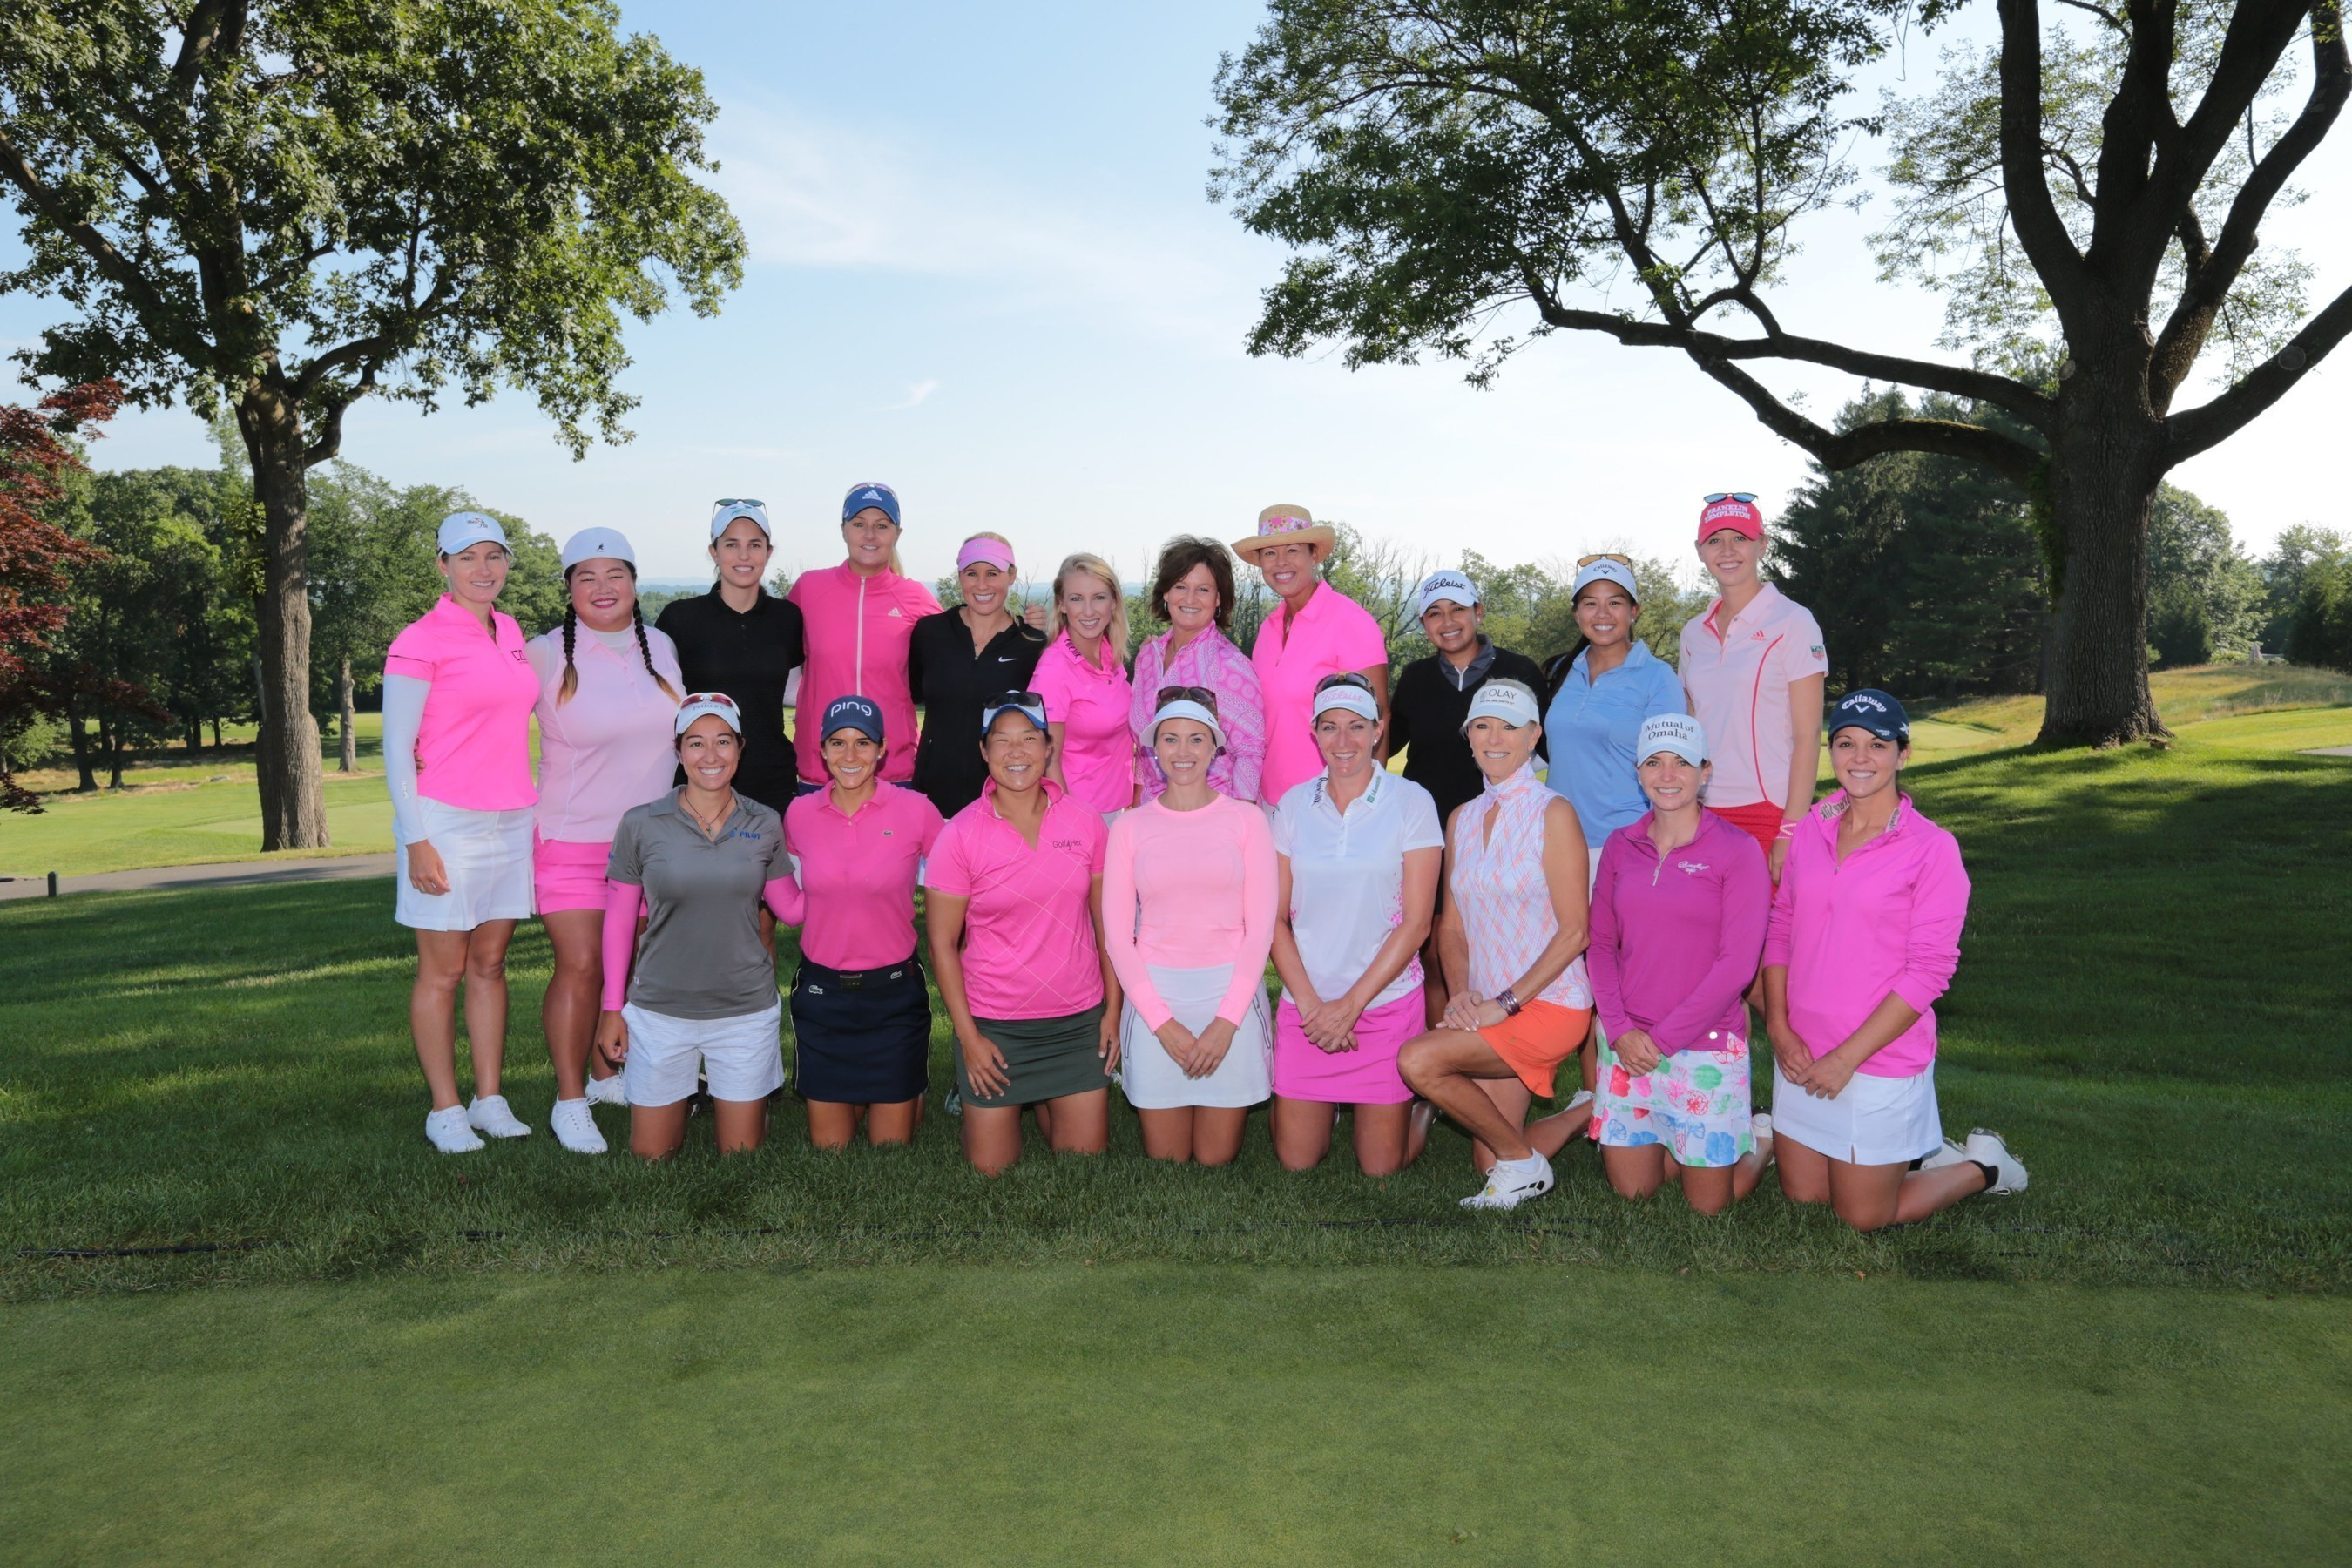 Leading LPGA players gathered to help the Val Skinner Foundation raise $500,000 for breast cancer initiatives. Photo by IPI Event Photography.